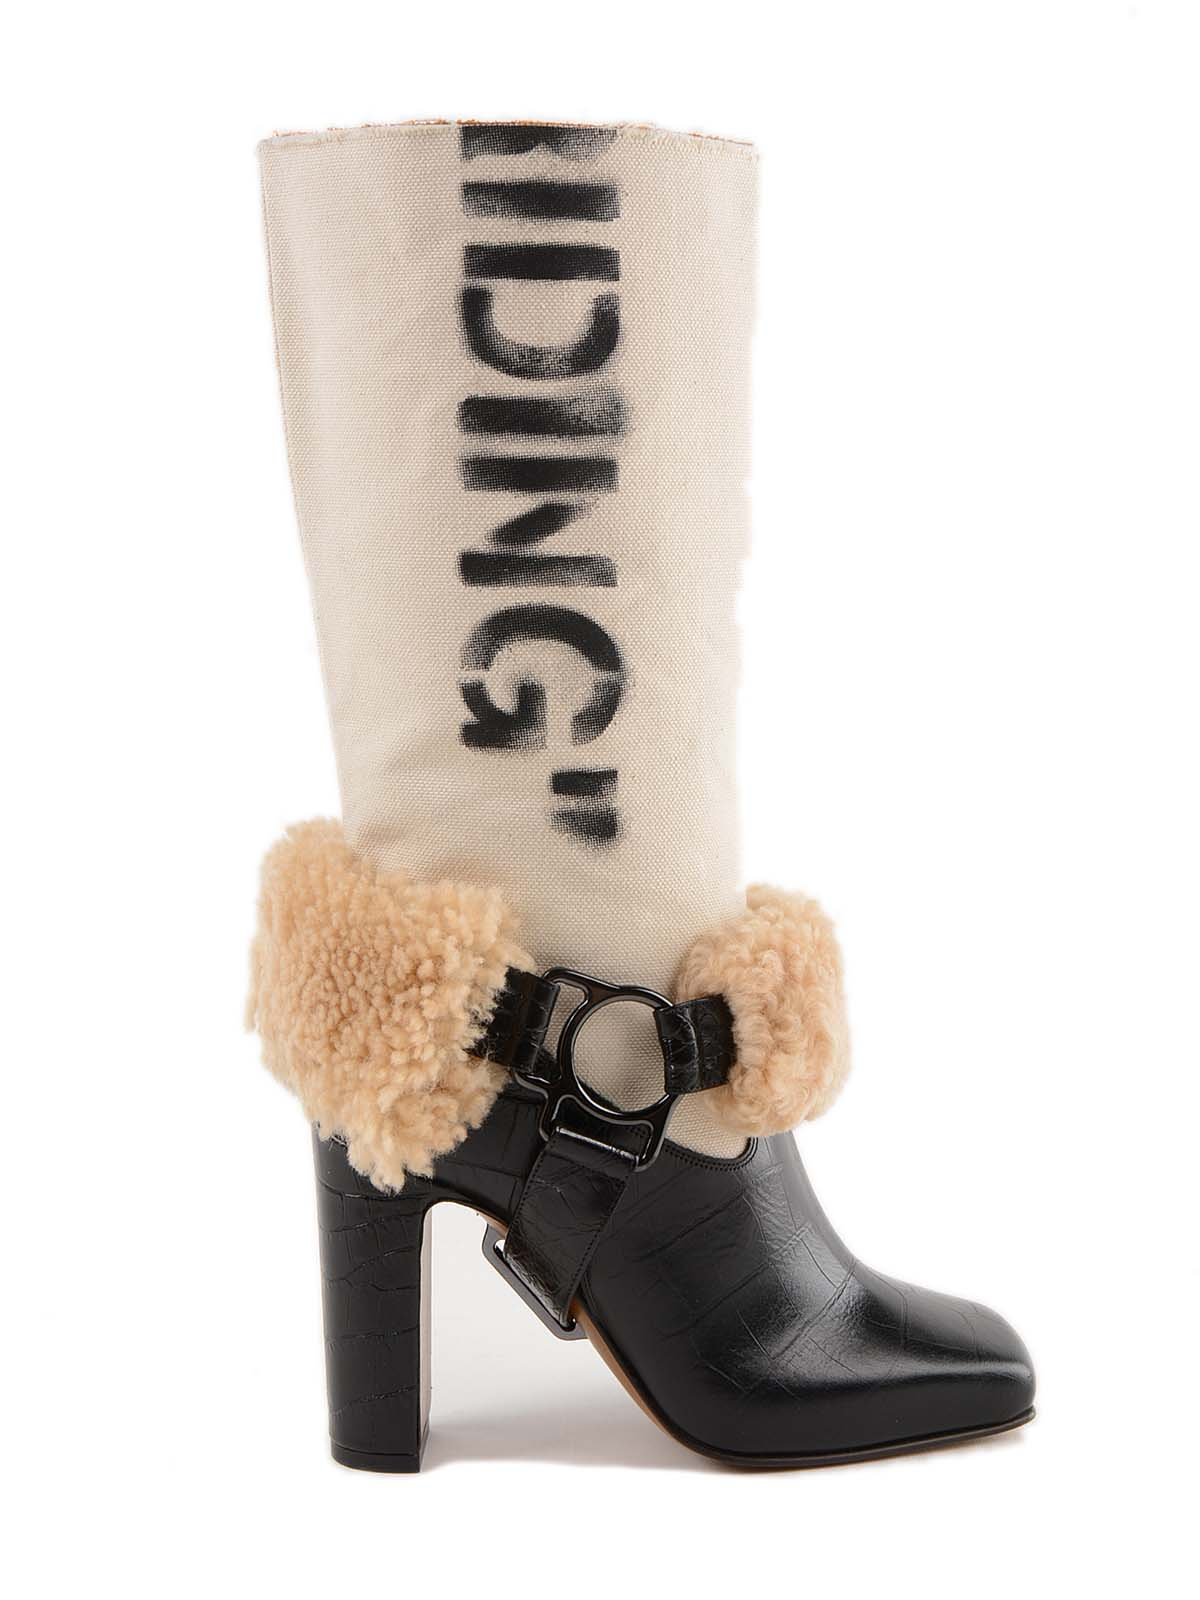 Off White Riding Mid-calf Boots